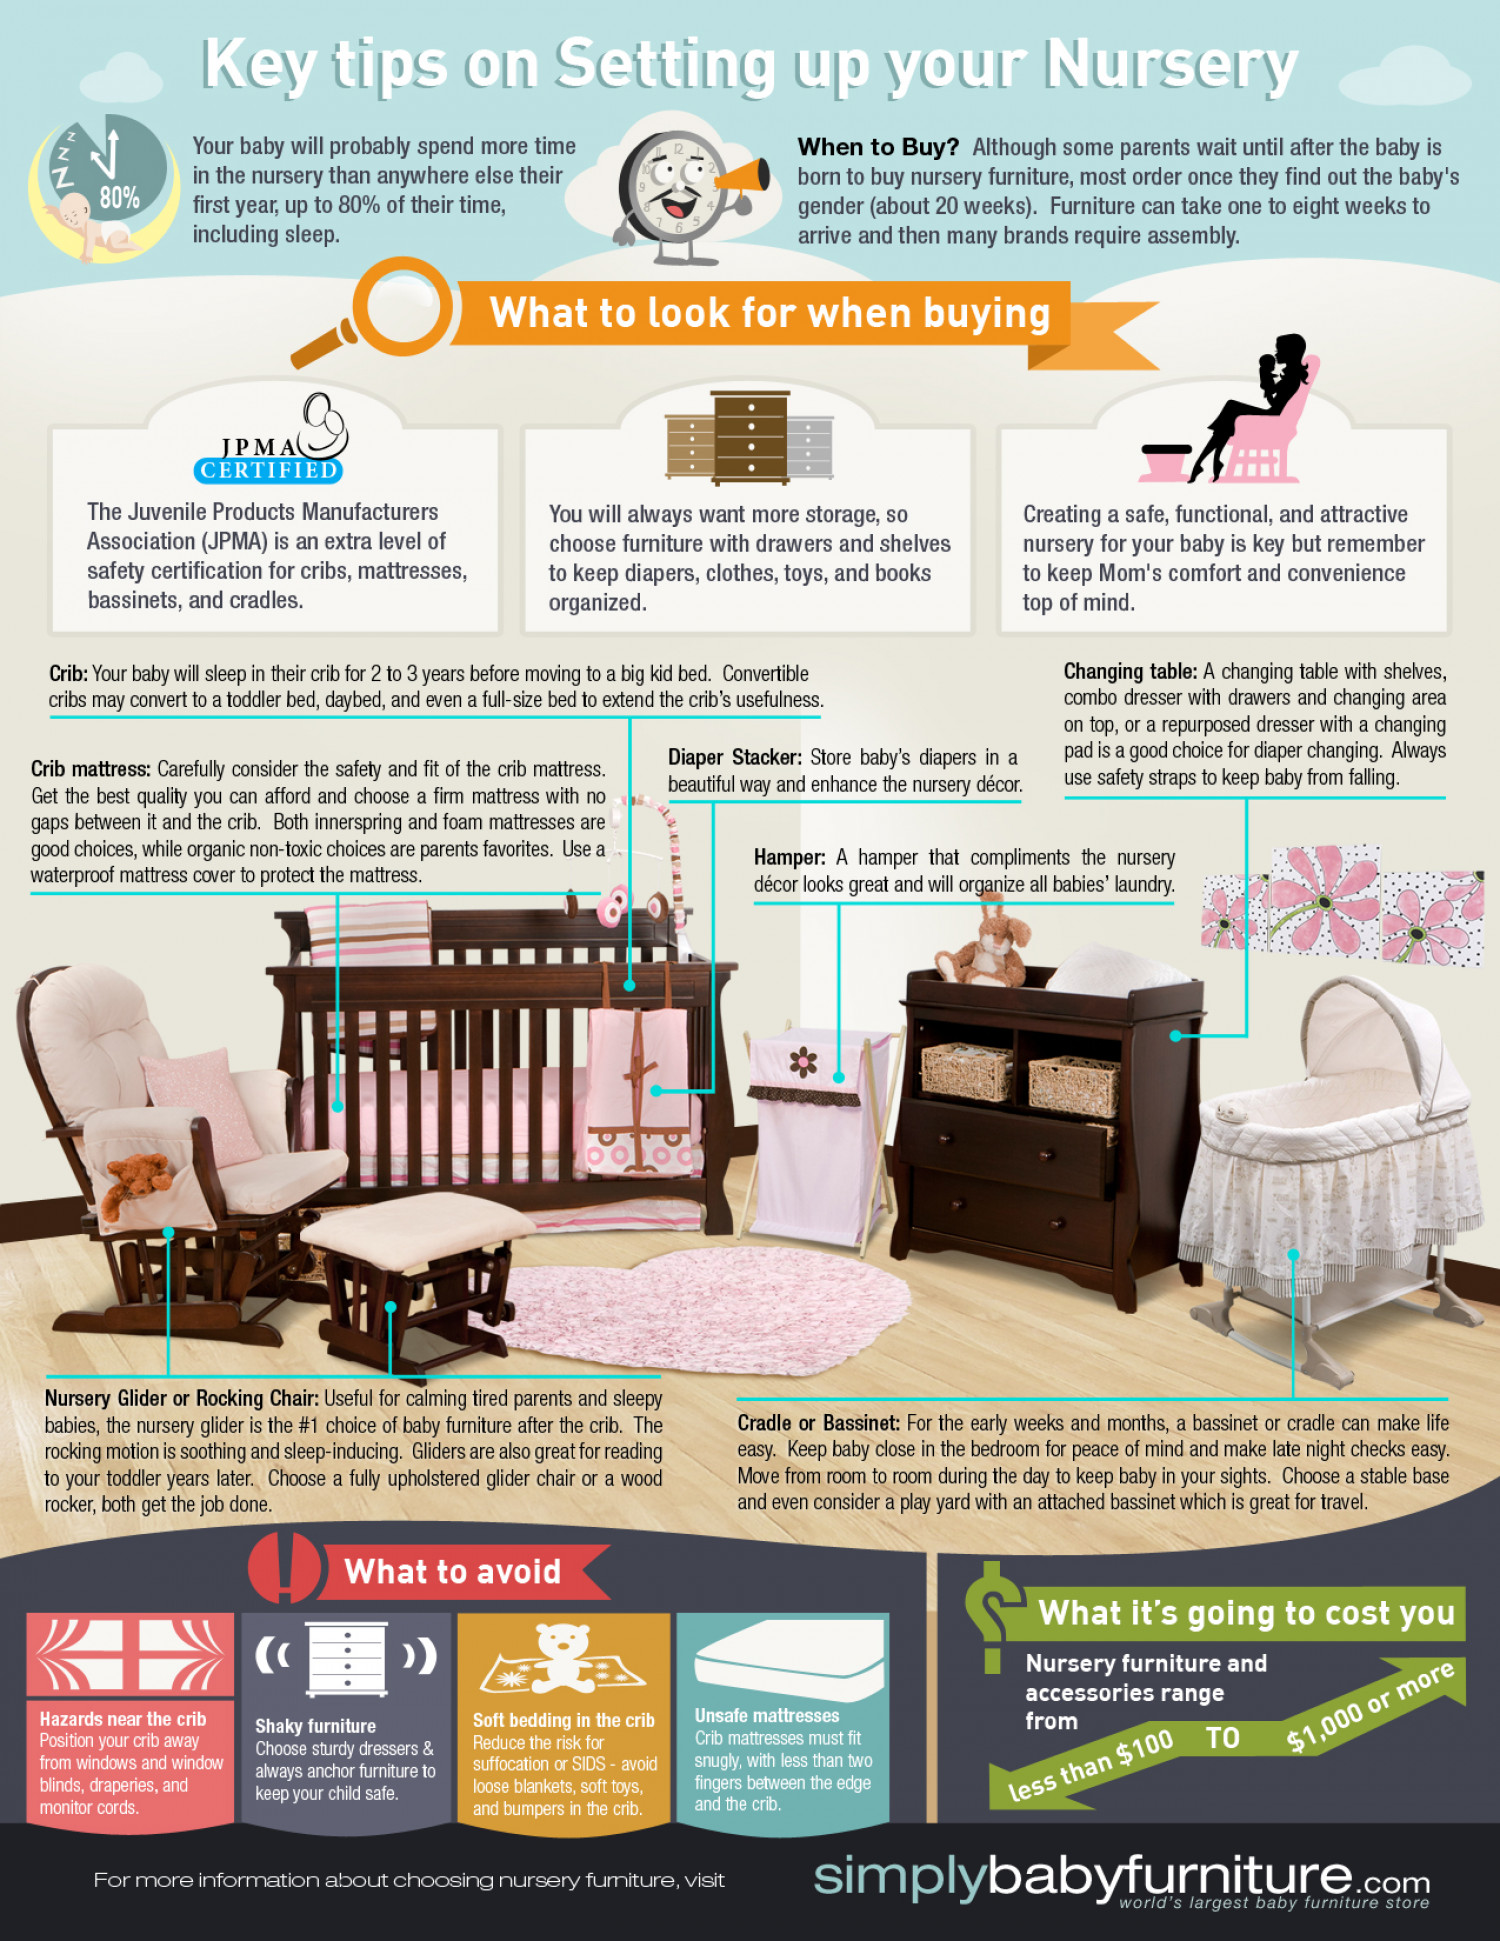 Key Tips on Setting Up Your Nursery Infographic